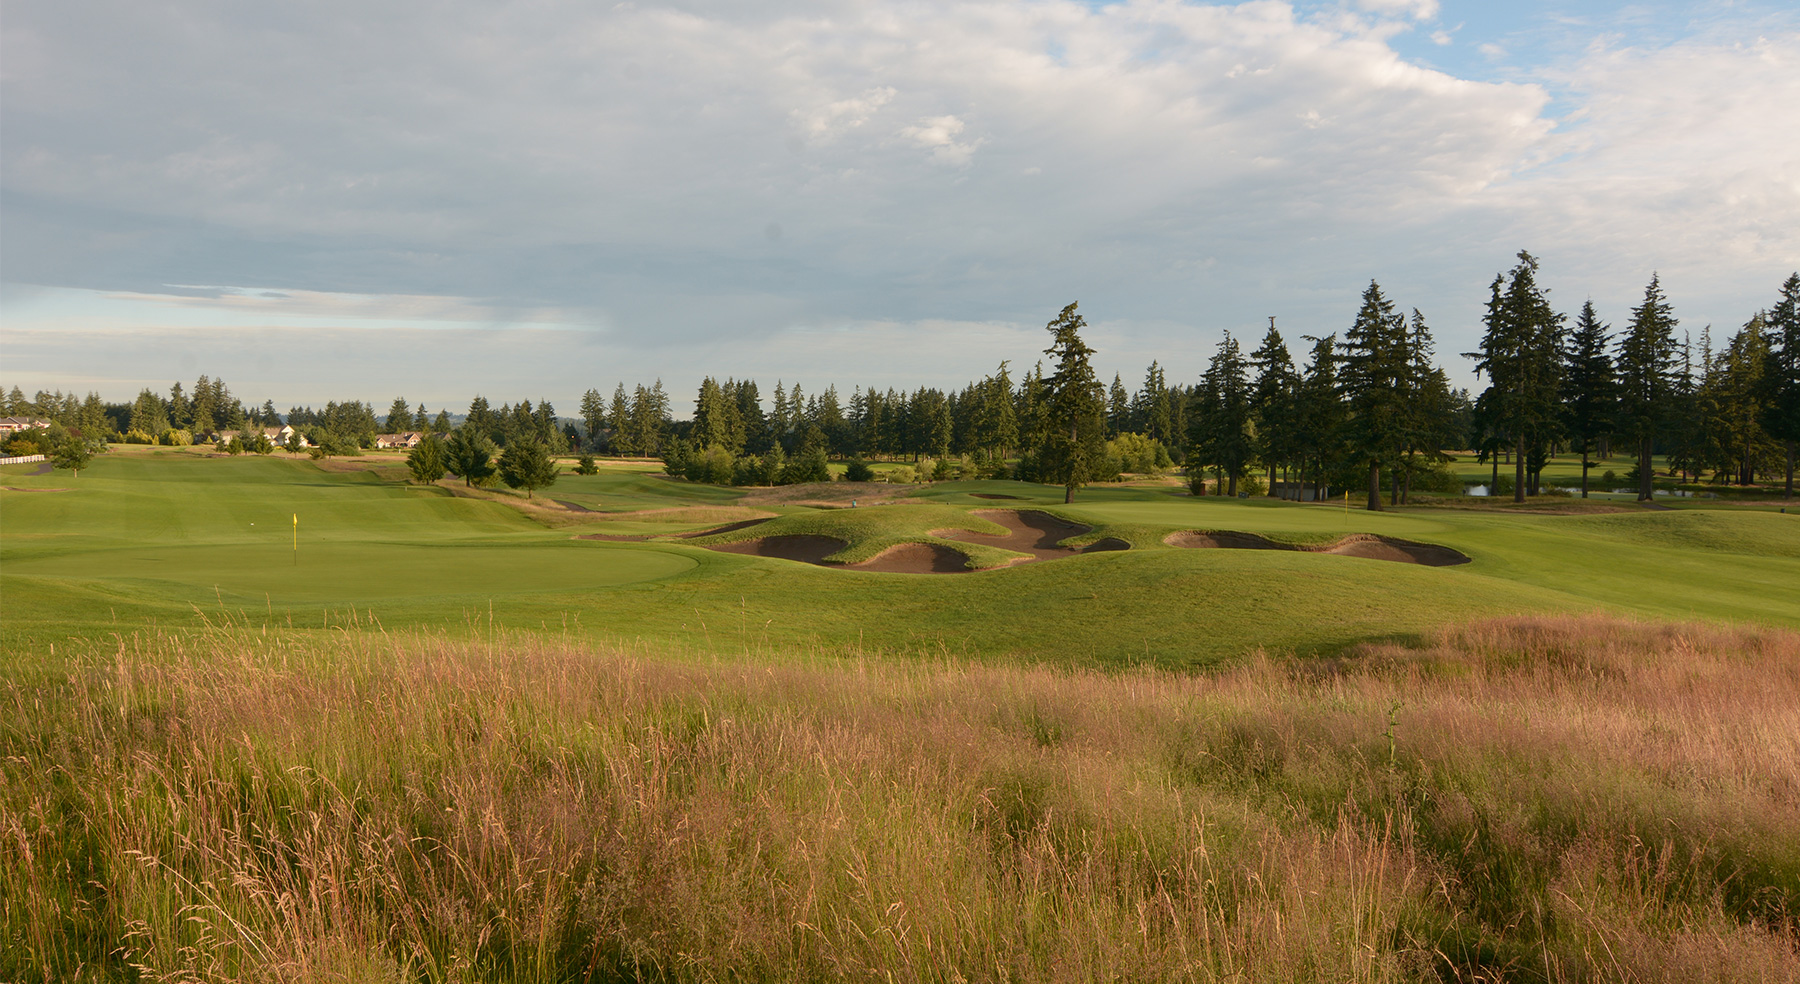 Moose Valley Golf Club